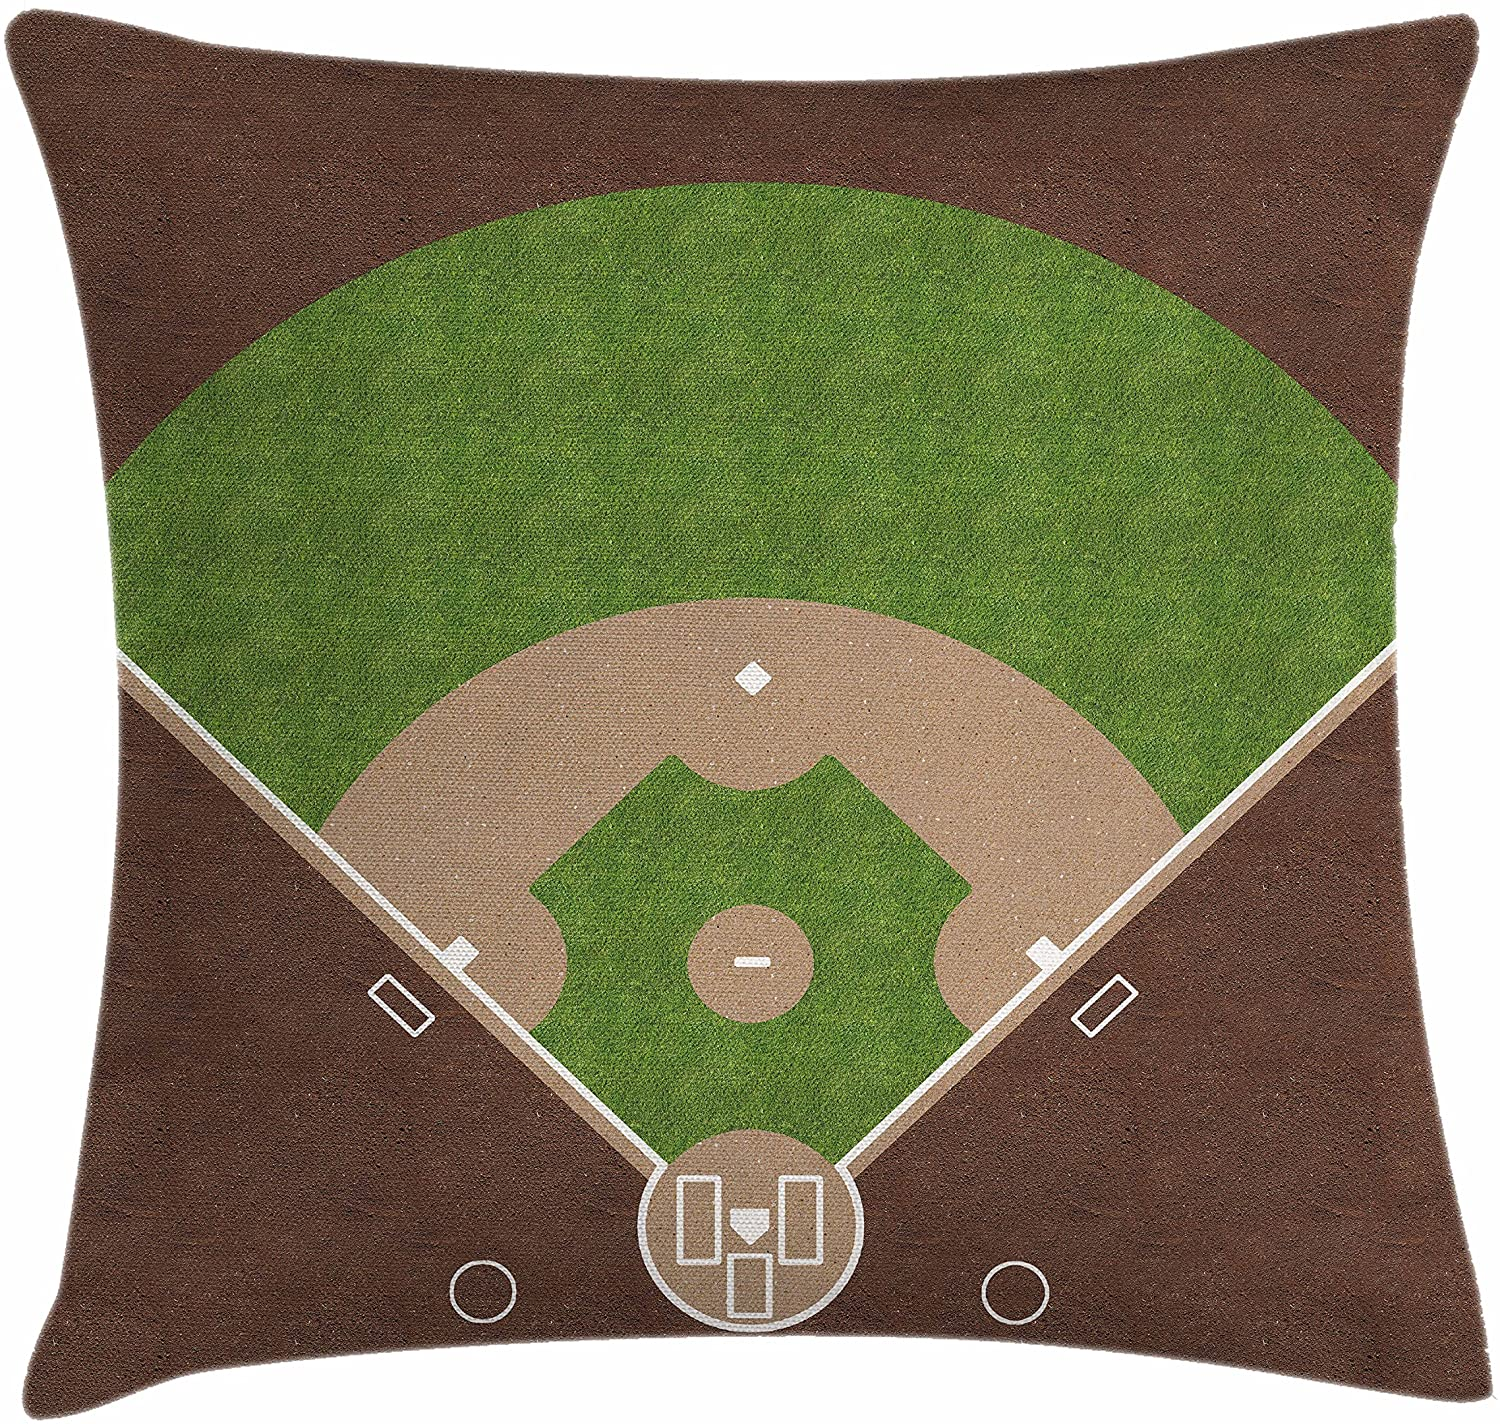 Lunarable Sports Throw Pillow Cushion Cover, American Baseball Field with White Markings Painted on Grass Print, Decorative Square Accent Pillow Case, 16